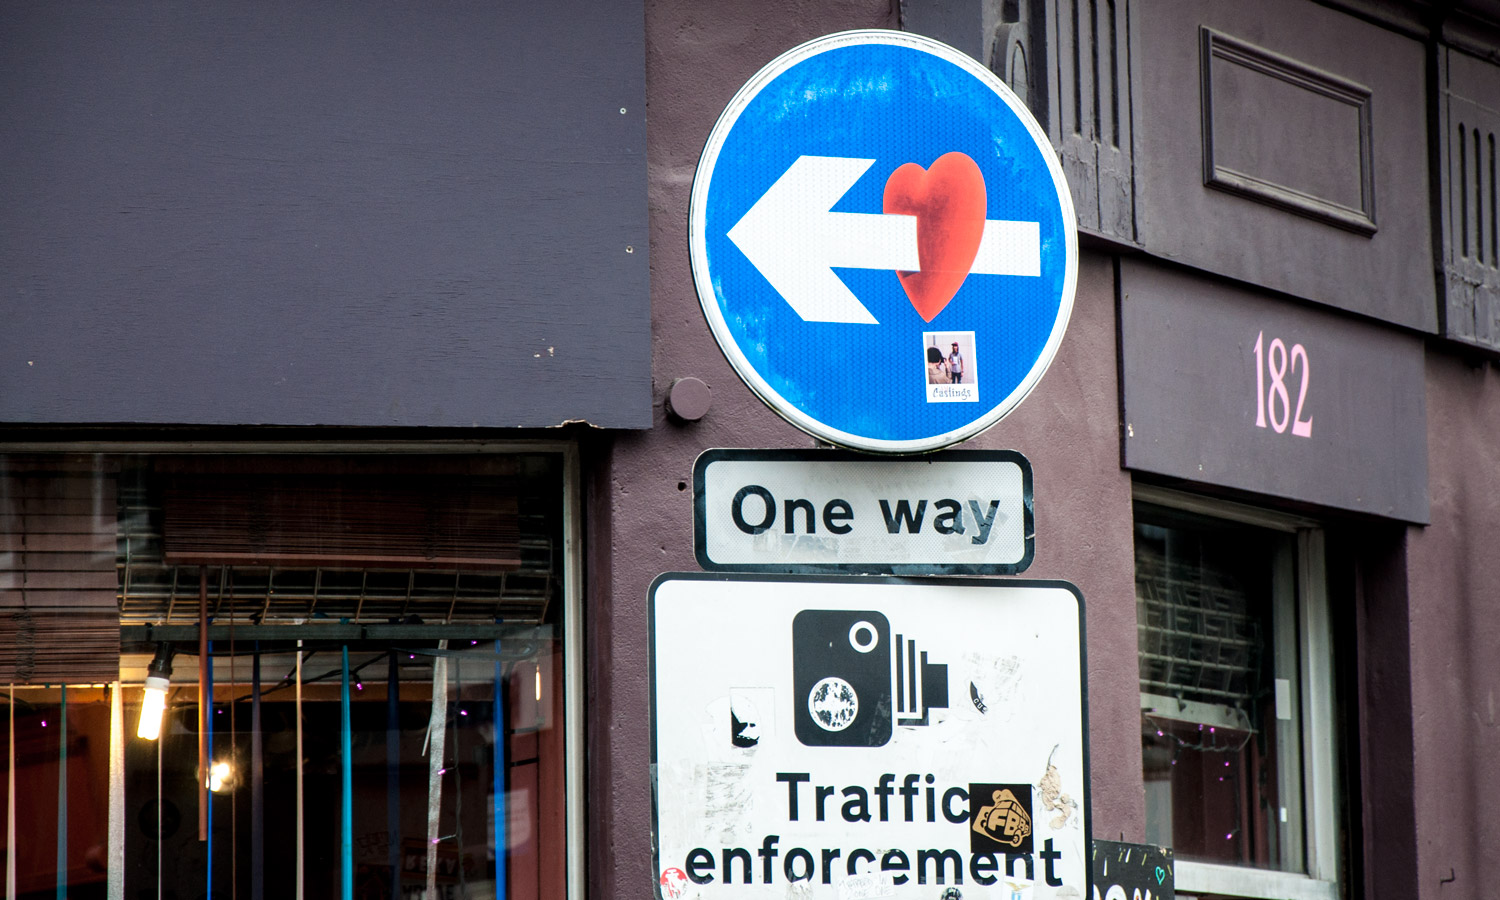 One way heartbreak on Brick Lane